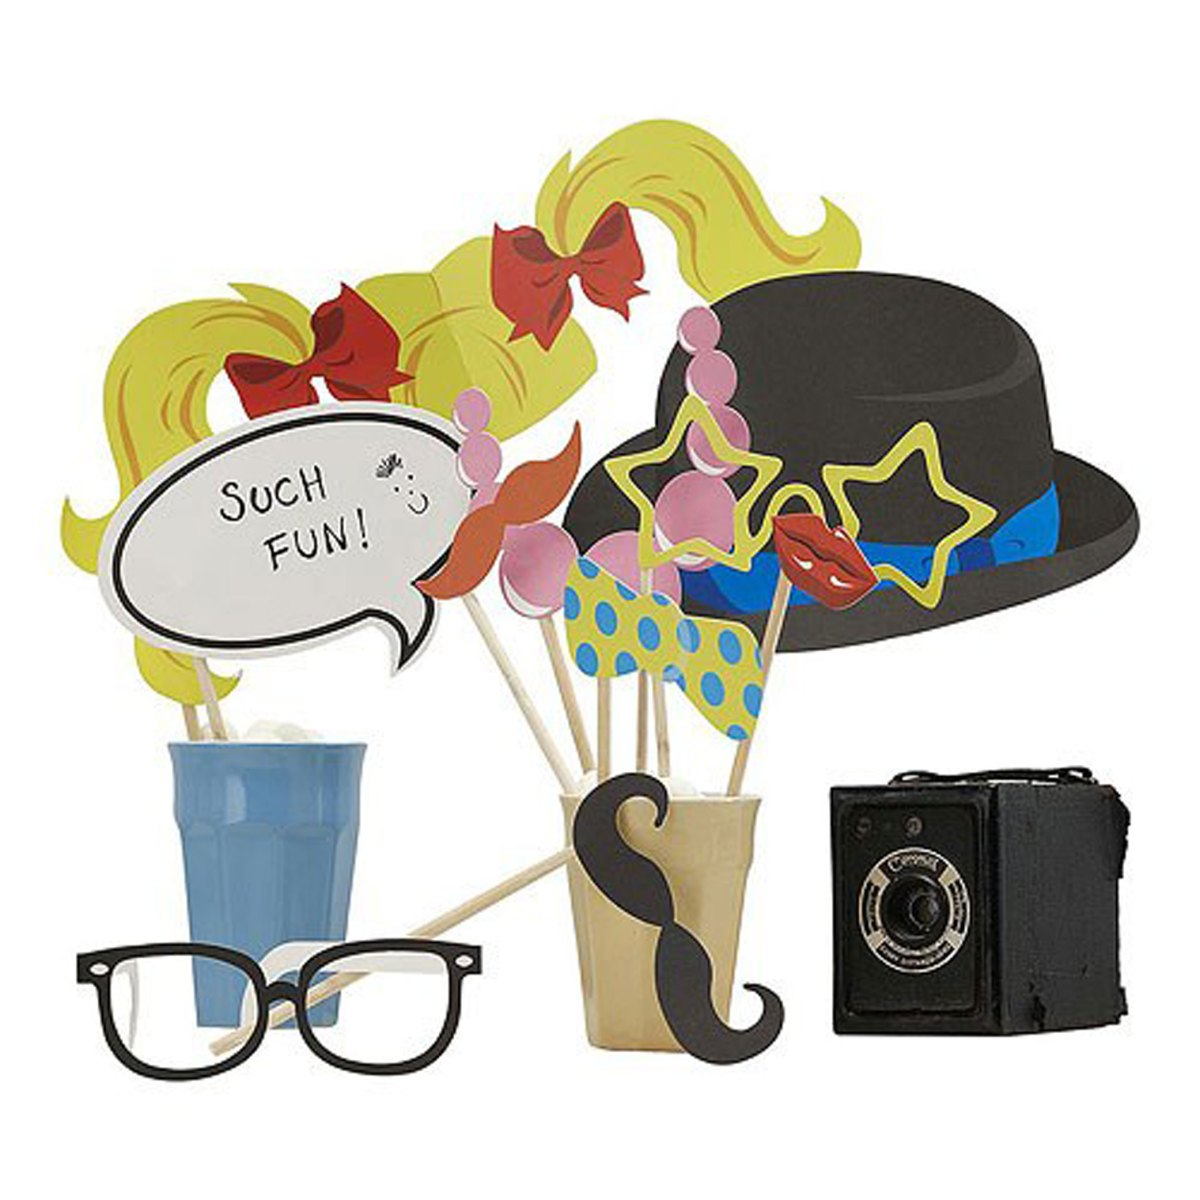 Vintage Classy Photo Booth Props Kit with hat, glasses and speech bubble